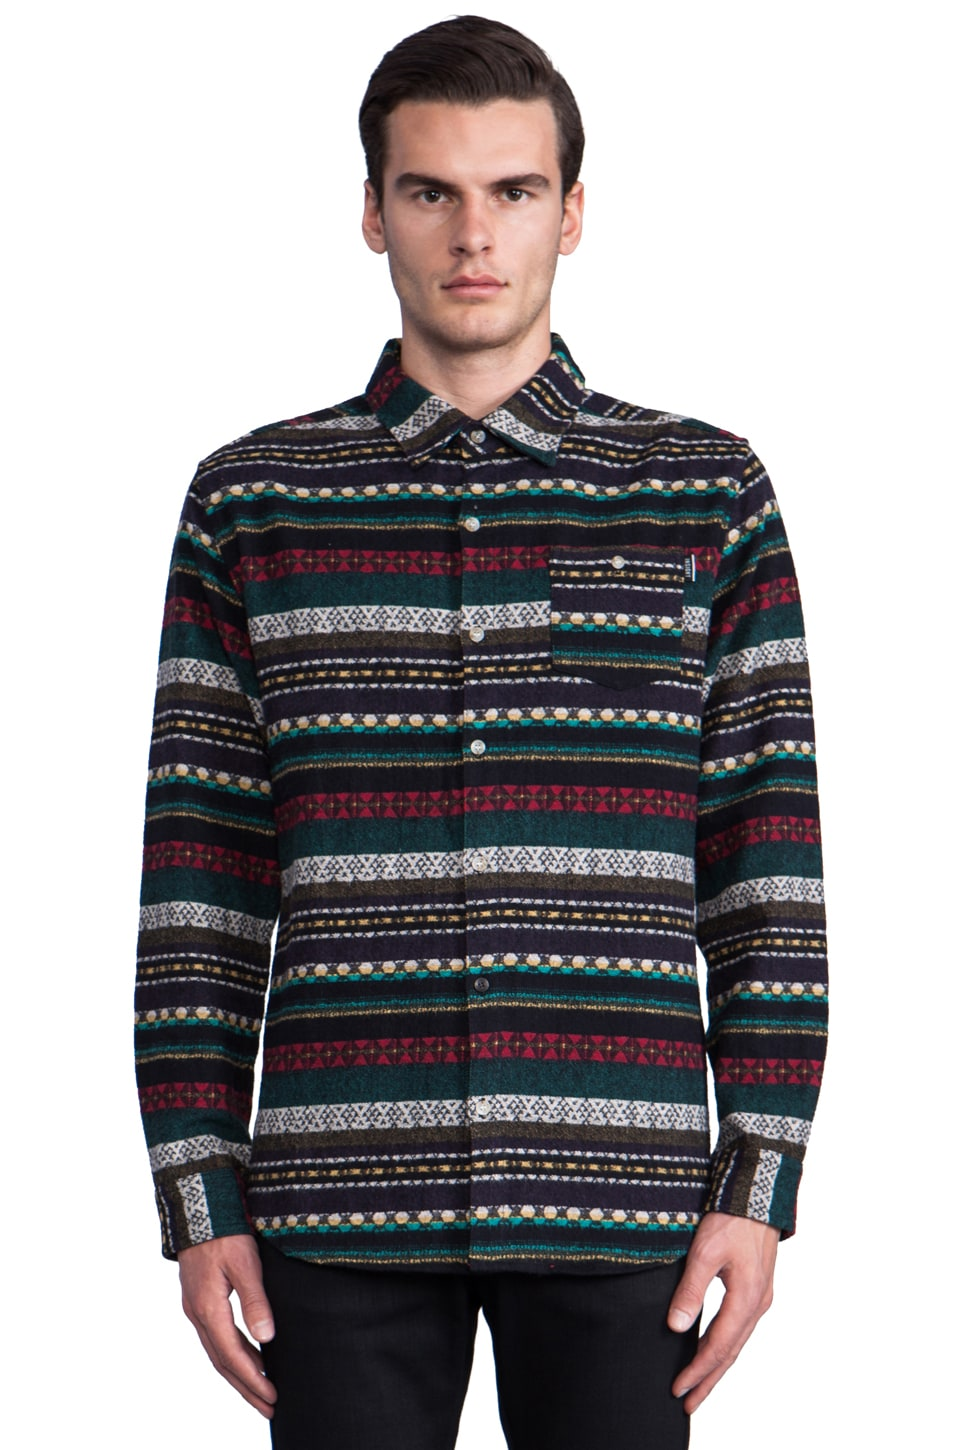 Insight Loom Doom Long Sleeve Button Down in Astro Turf Green